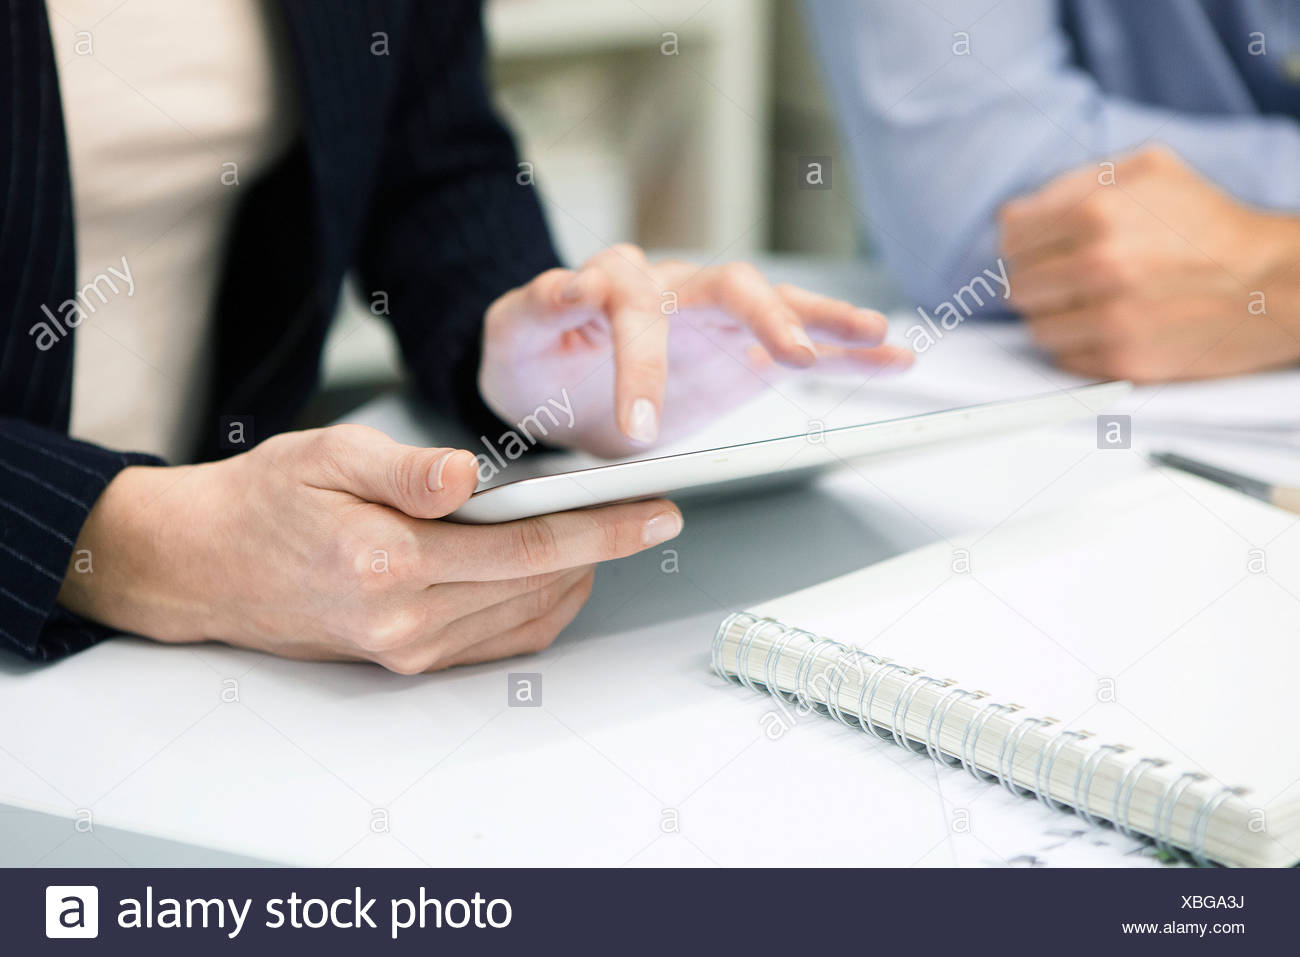 Businesswoman using digital tablet, cropped Photo Stock